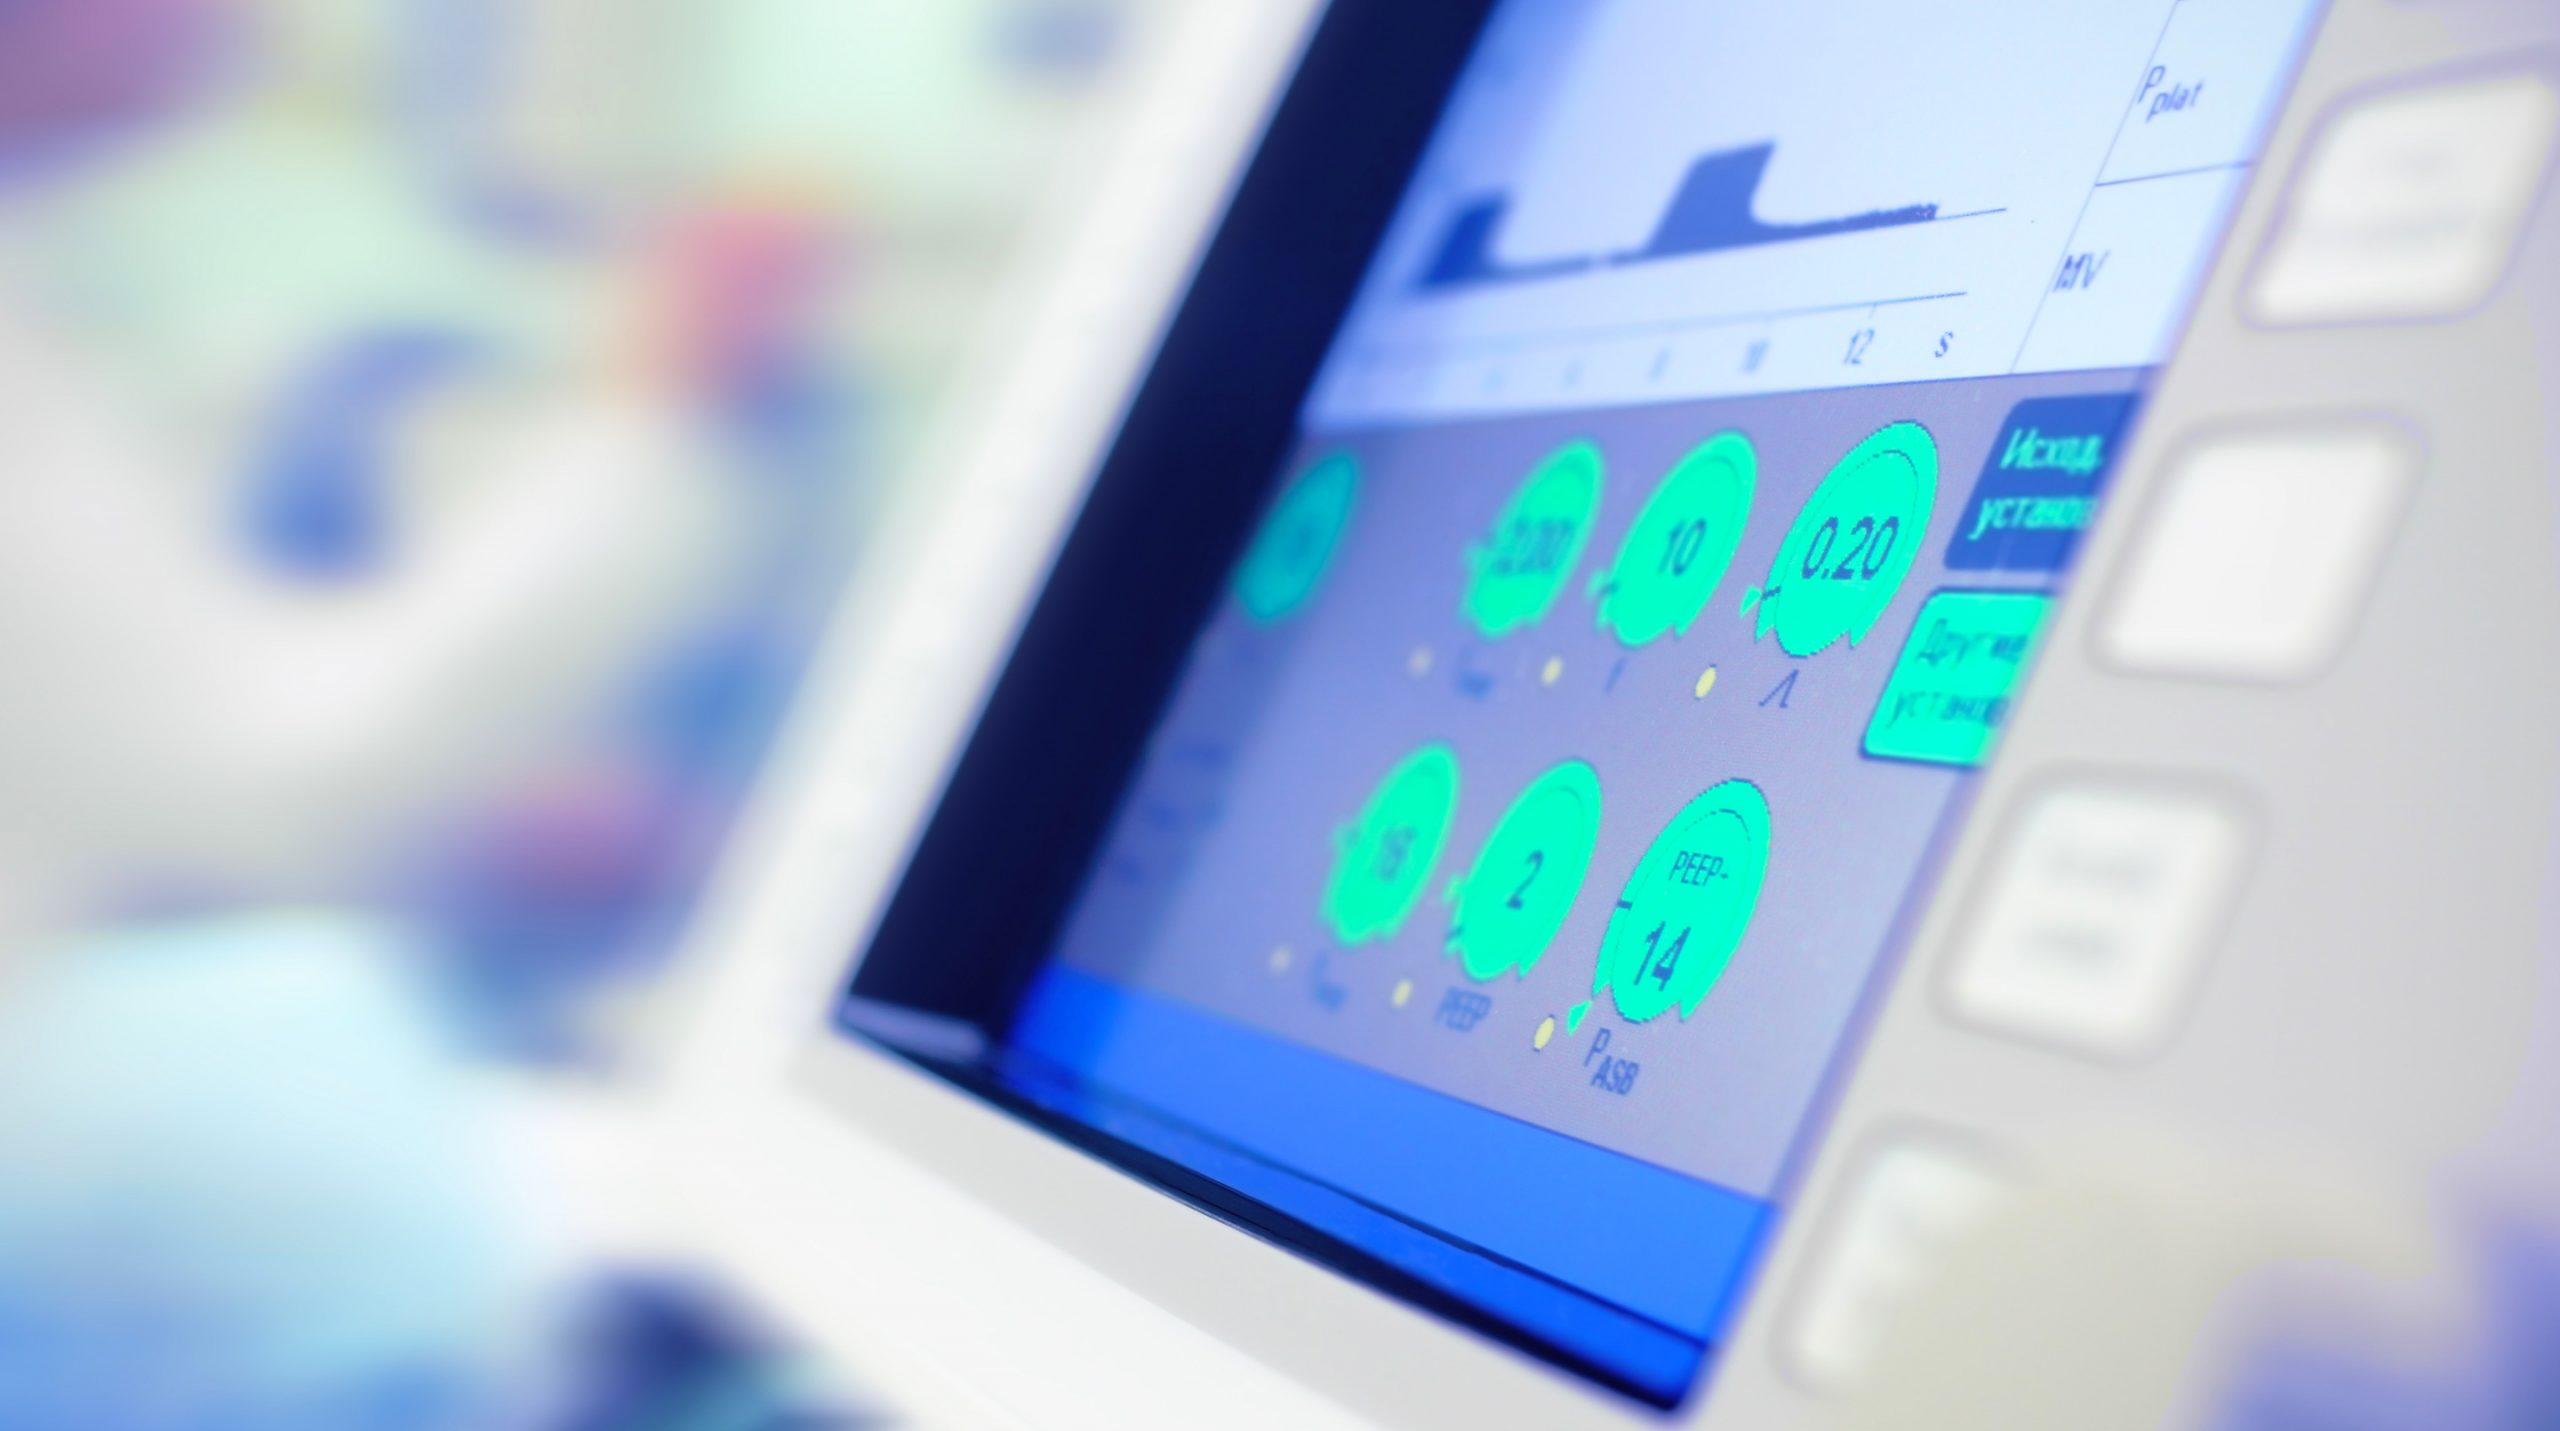 Compliance, Cost, Complexity, Collaboration: Minding your Cs in Medical Devices Development